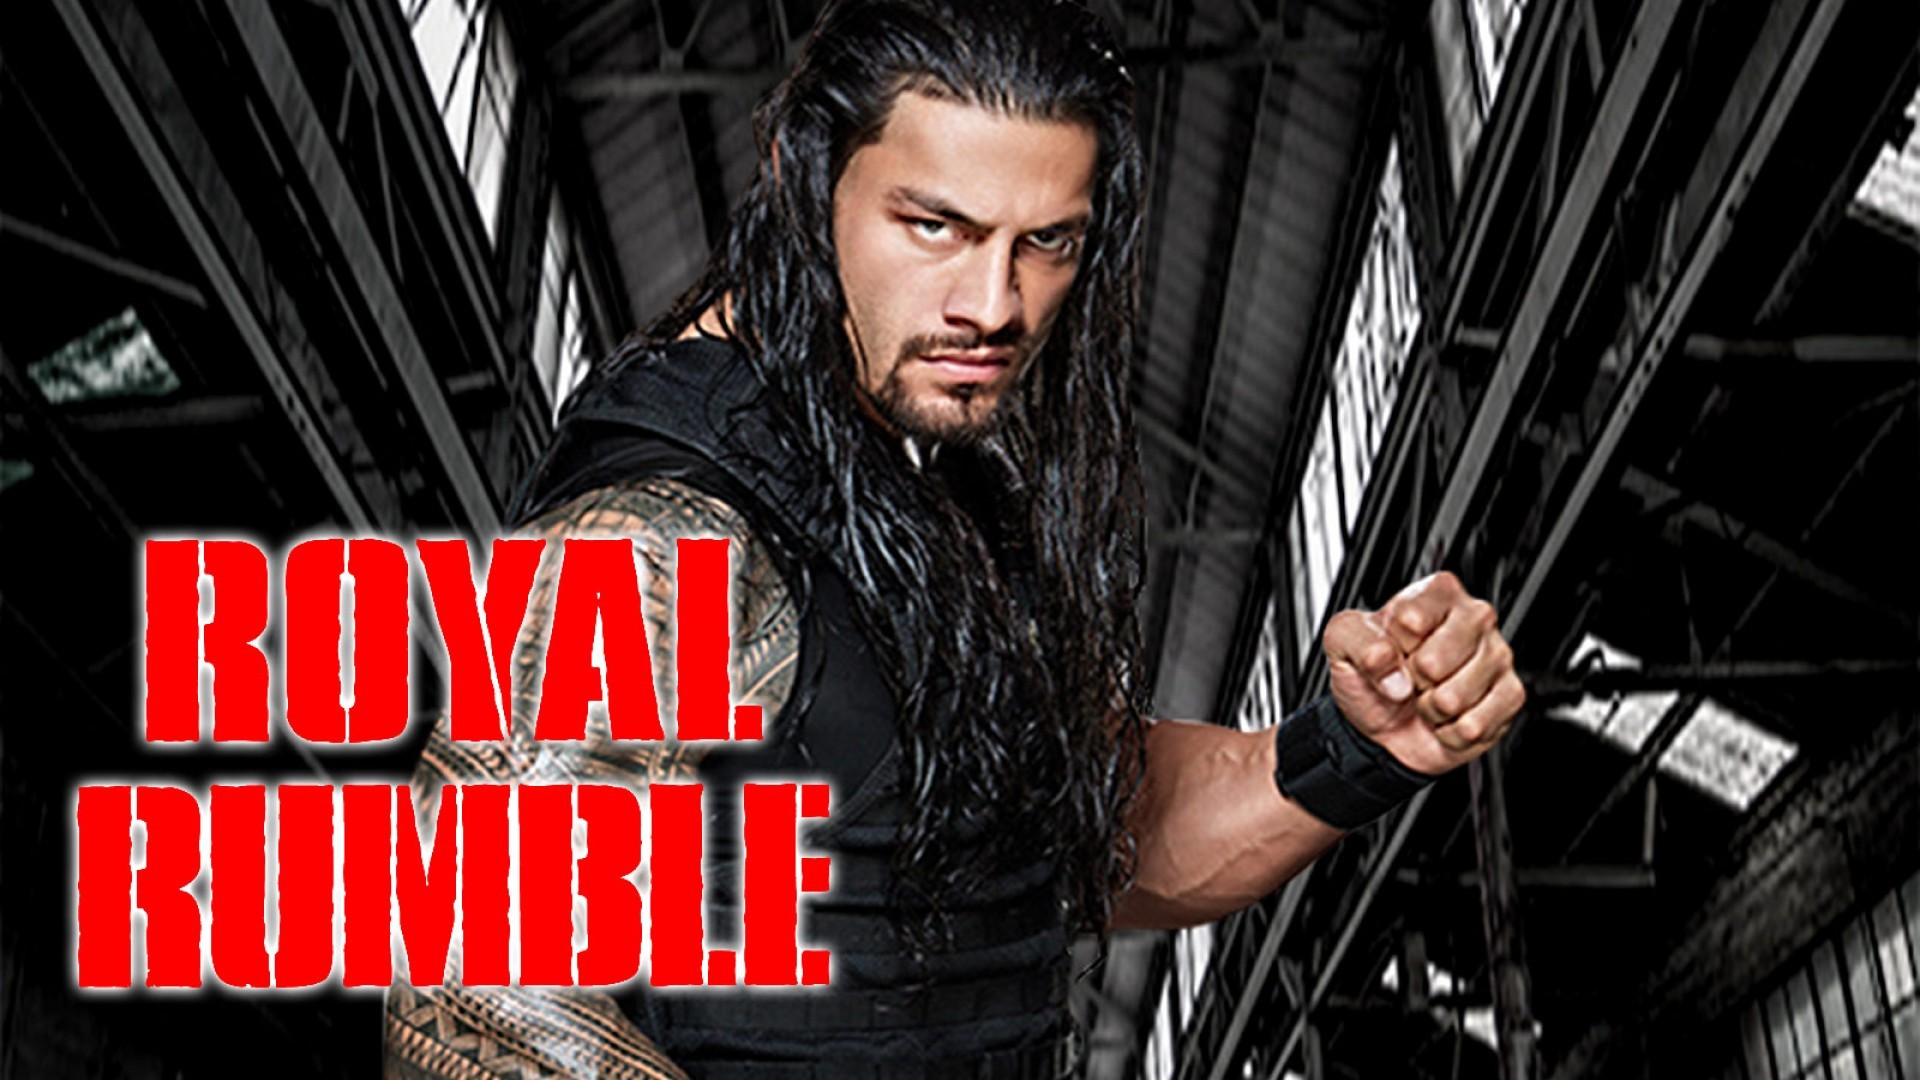 1920x1080 Roman Reigns 2015 Royal Rumble Wallpaper